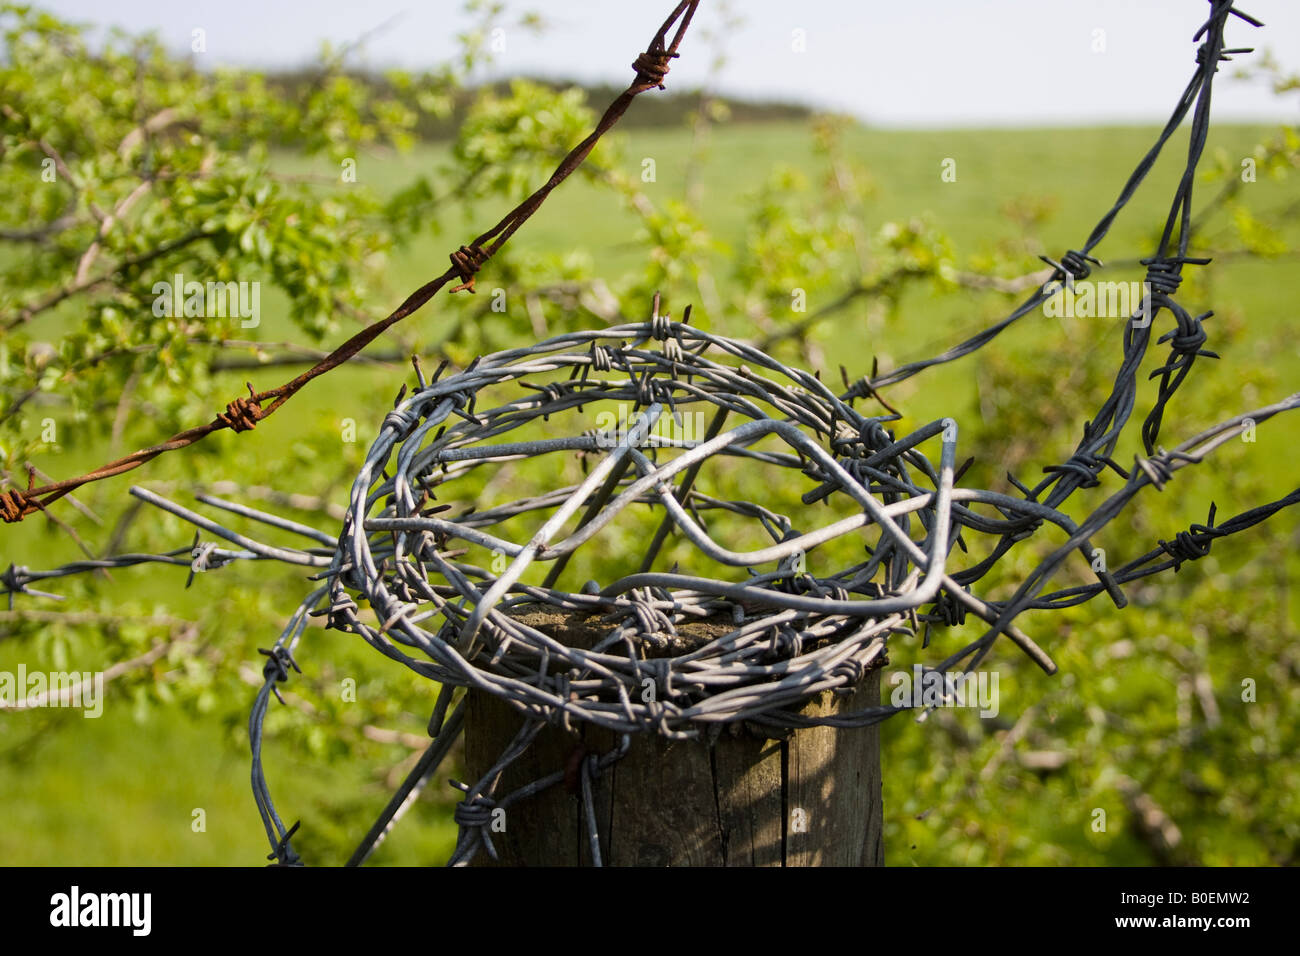 Coil of barbed wire sitting on a fence post - Stock Image